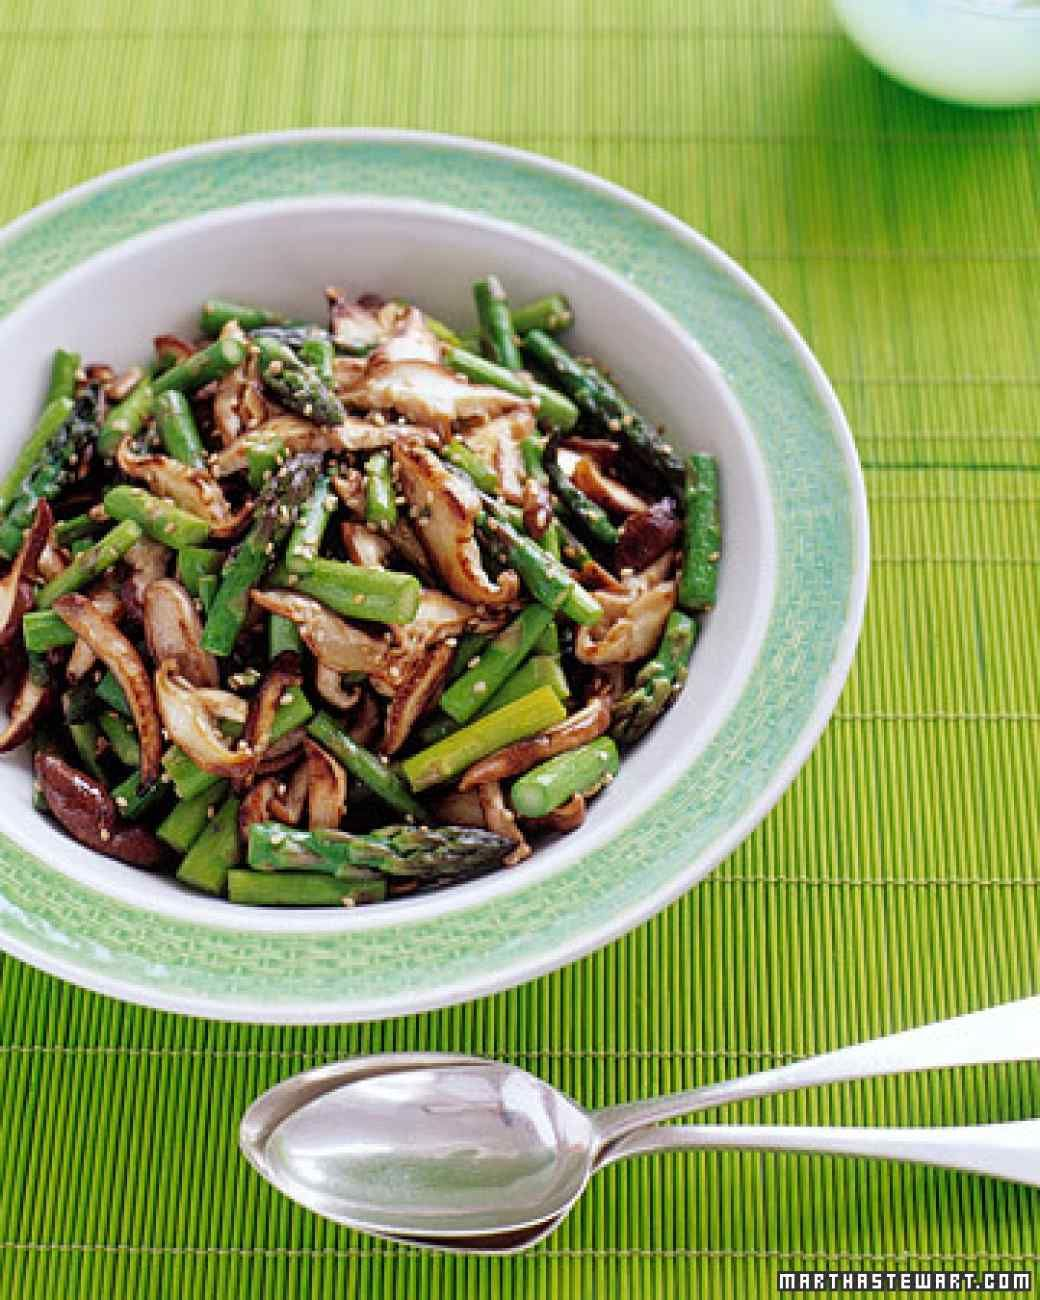 This earthy, satisfying stir-fry of shiitake mushrooms, asparagus, and toasted sesame seeds can serve as a colorful side dish or a light lunch.